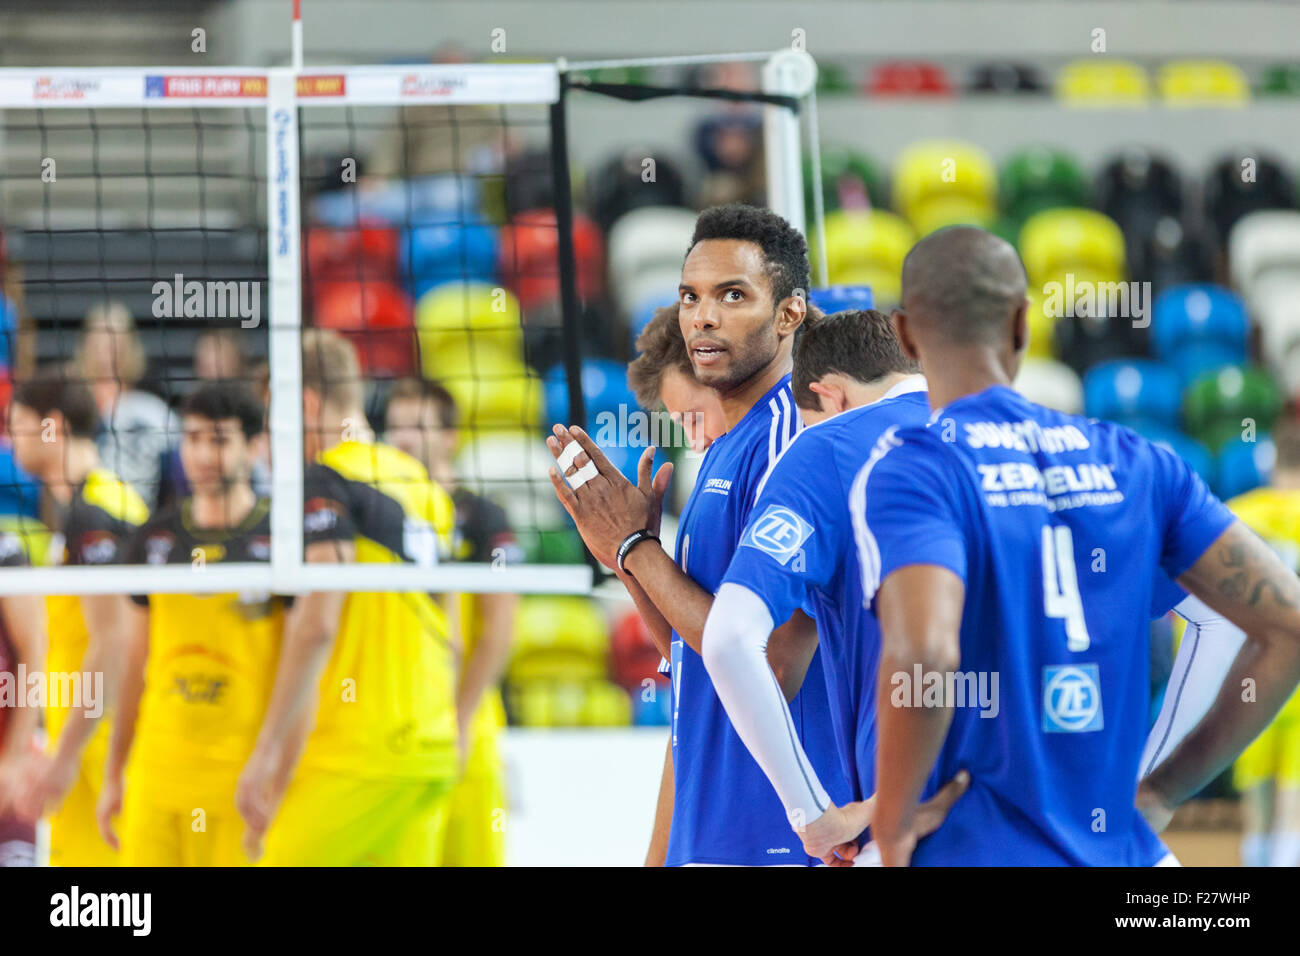 Copper Box Arena, London, UK. 13th Sep. 2015. VfB's players await a decision by the referee. VfB Friedrichshafen - Stock Image